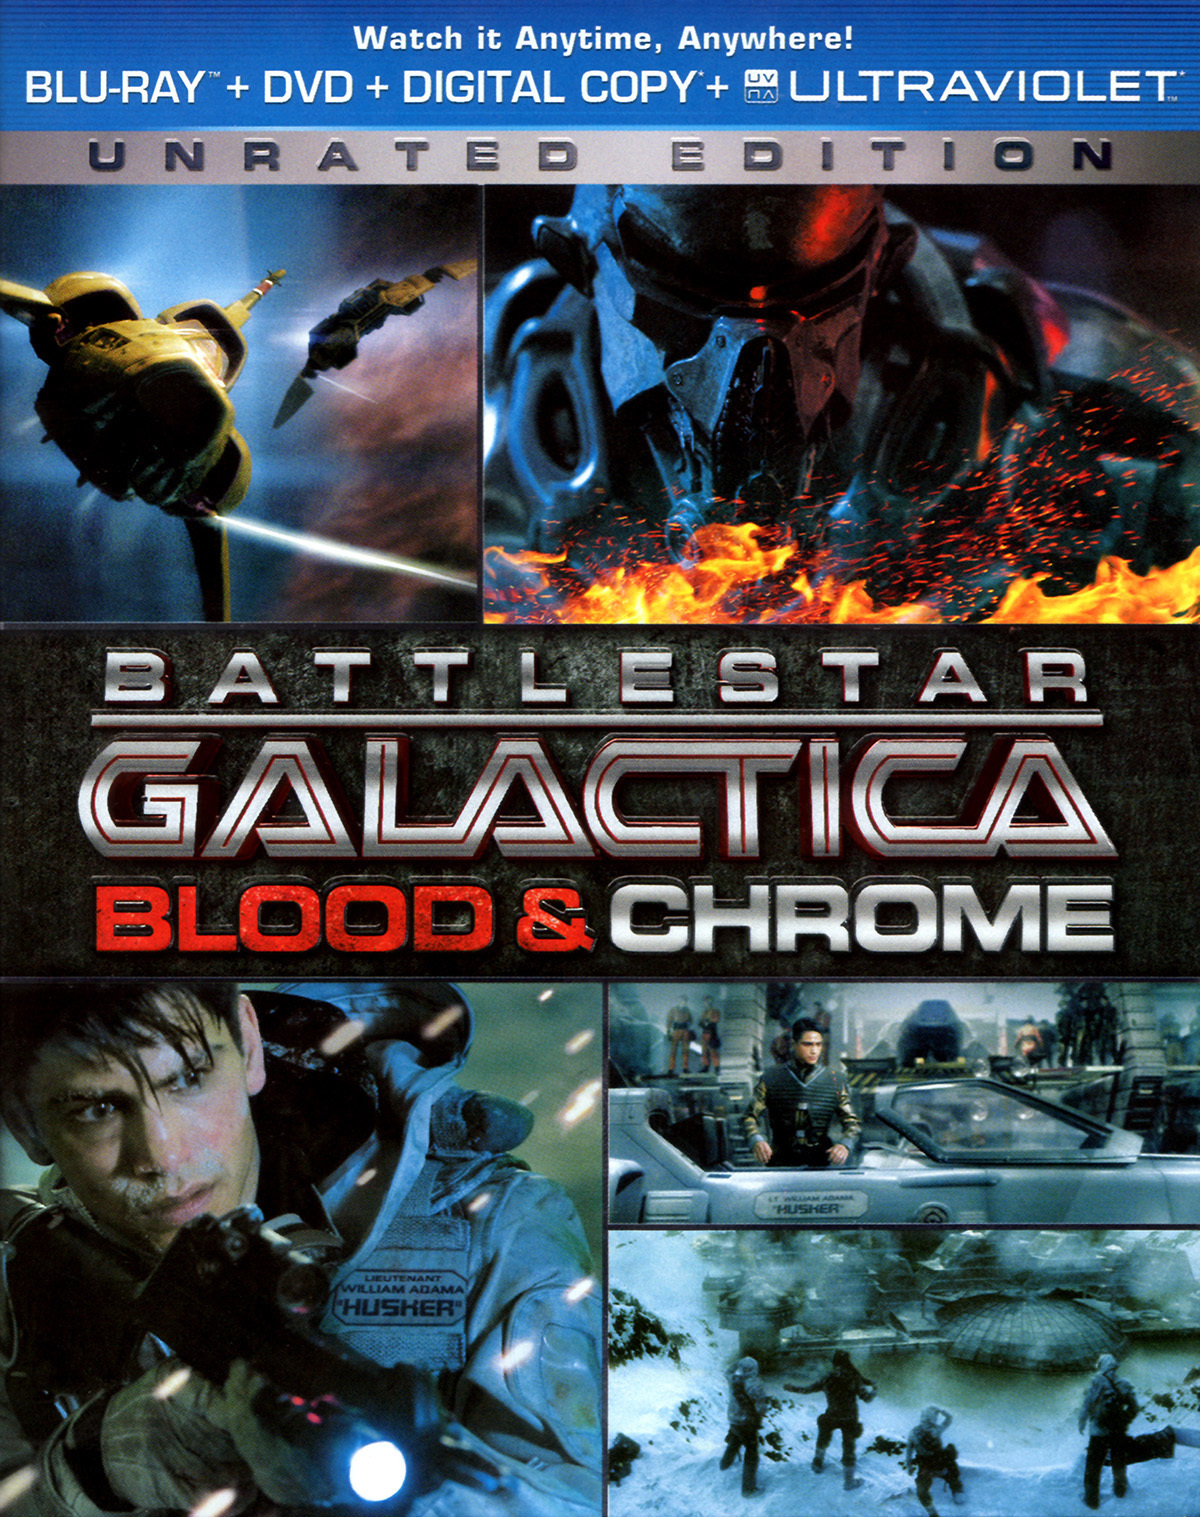 : Battlestar Galactica Blood and Chrome 2013 dual complete bluray gmb